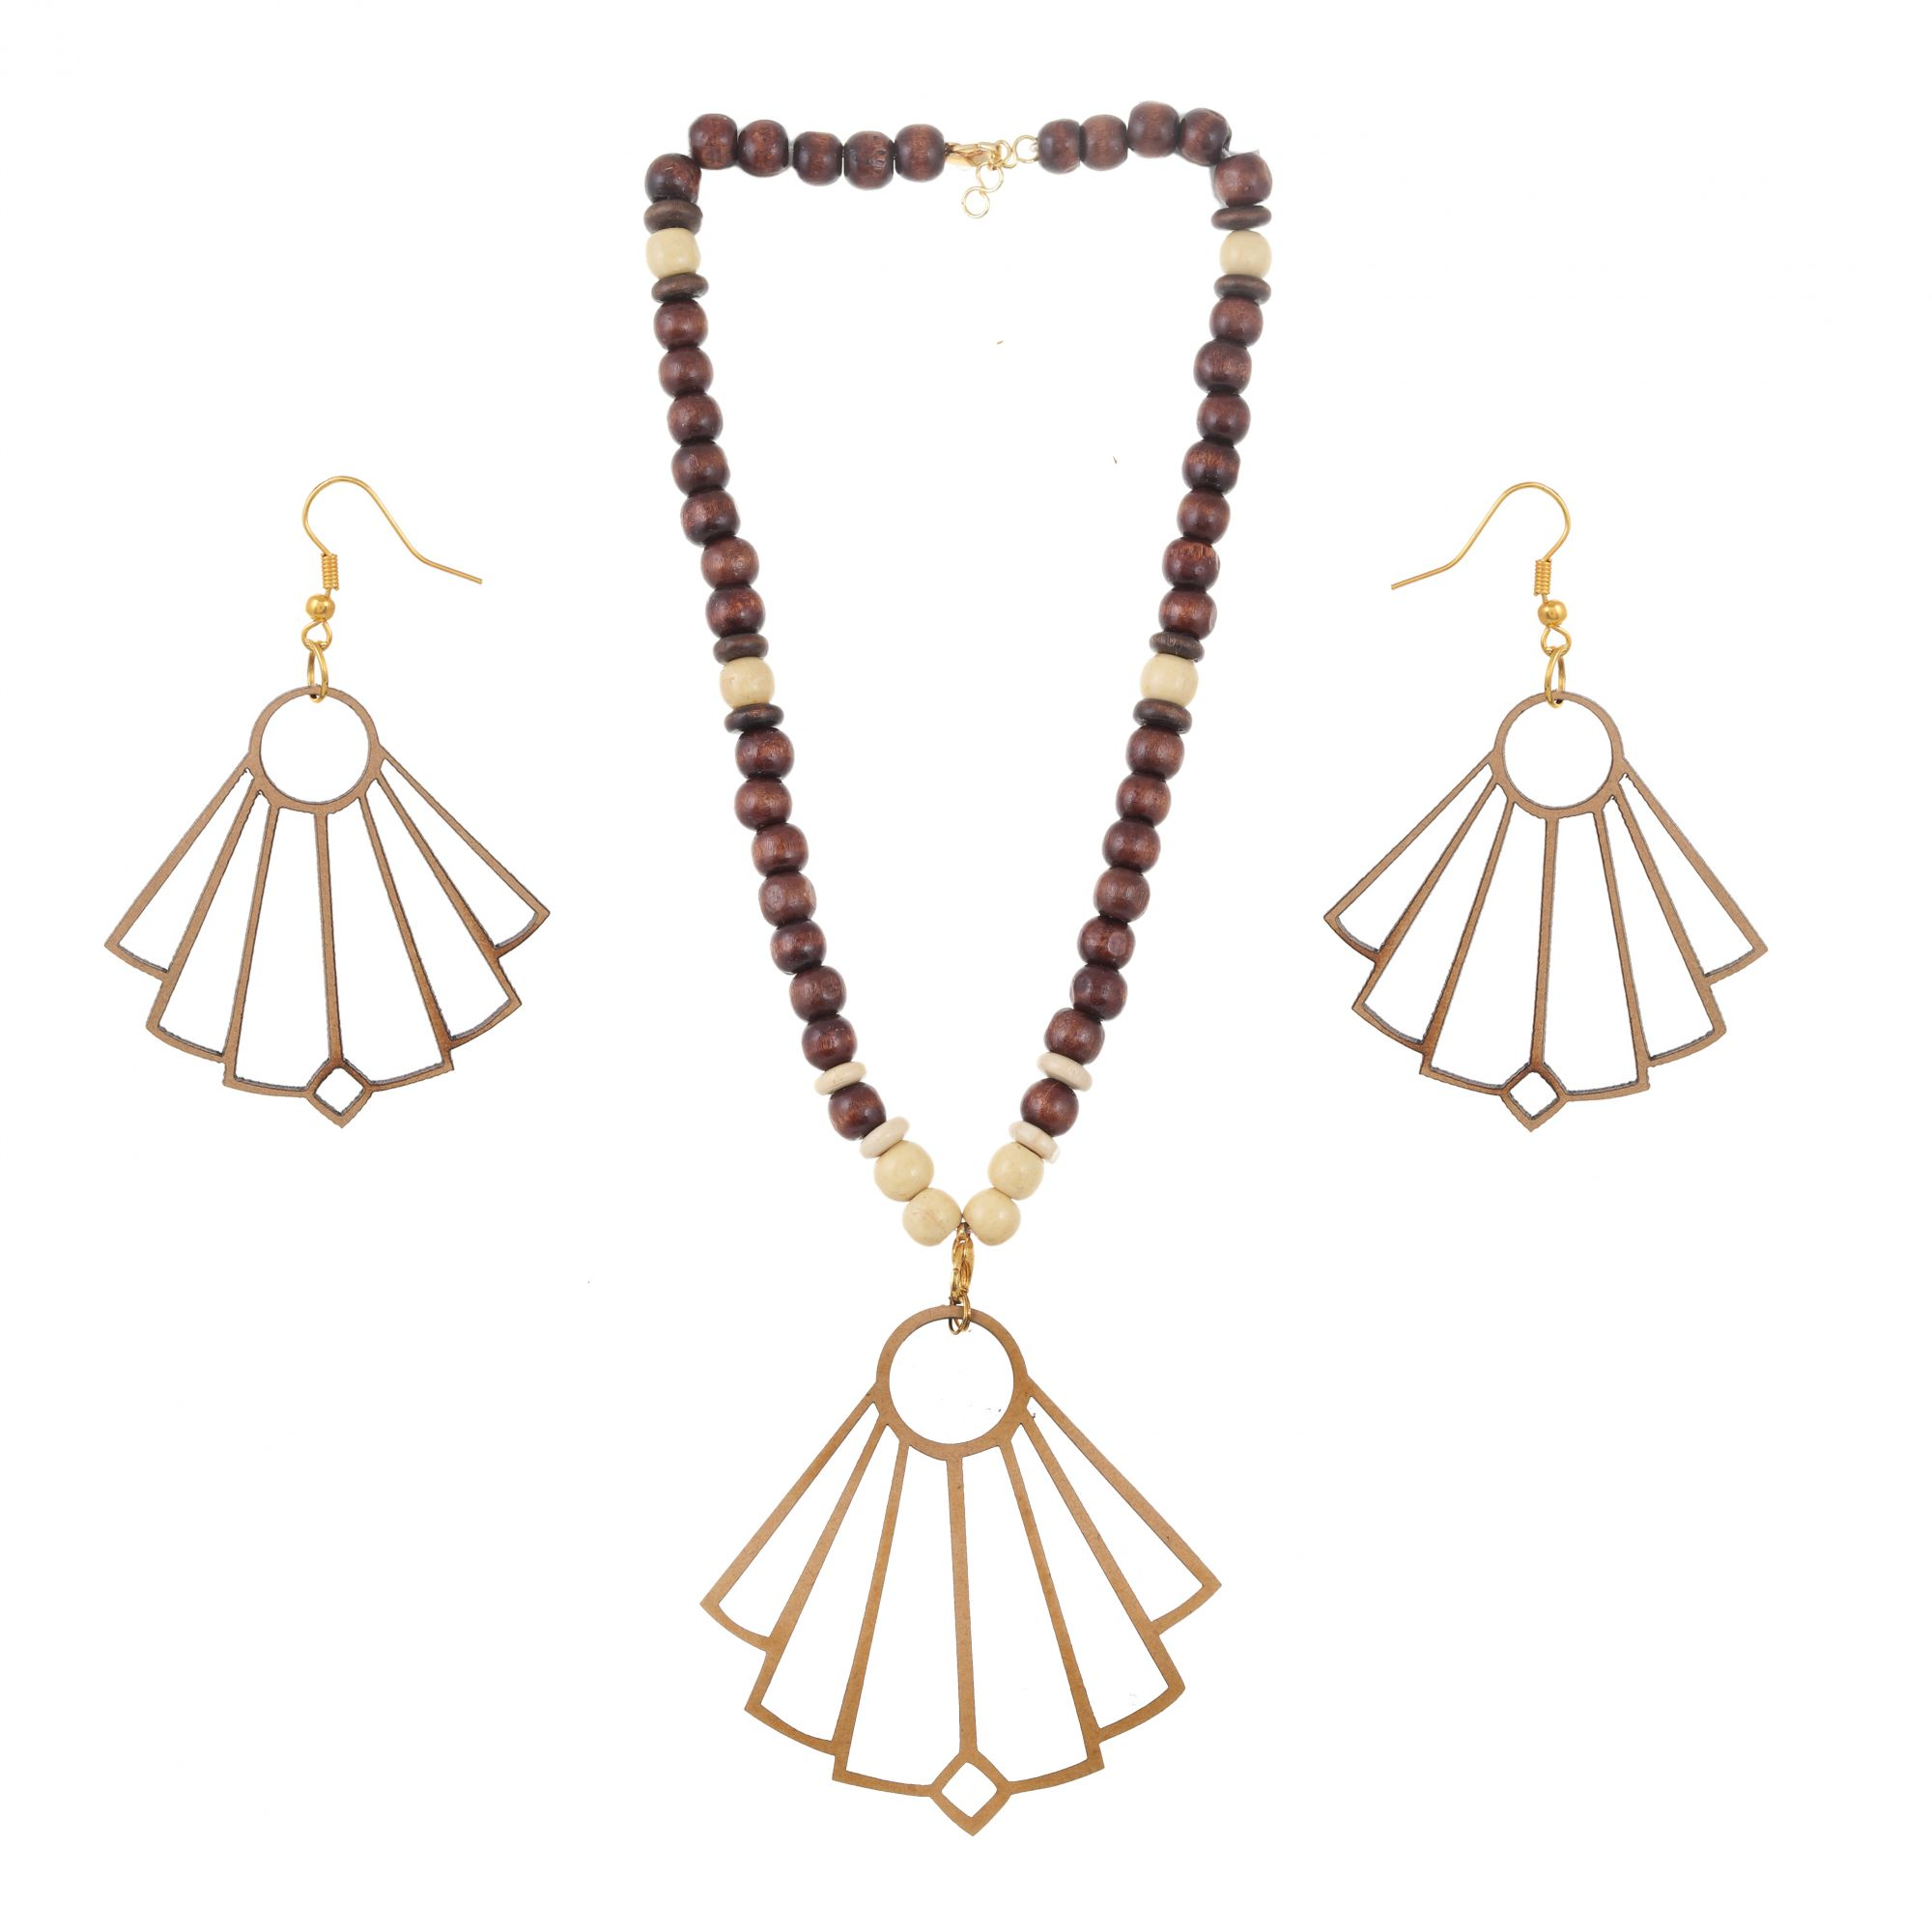 Japanese Fan Shape Wooden Jewellery Set